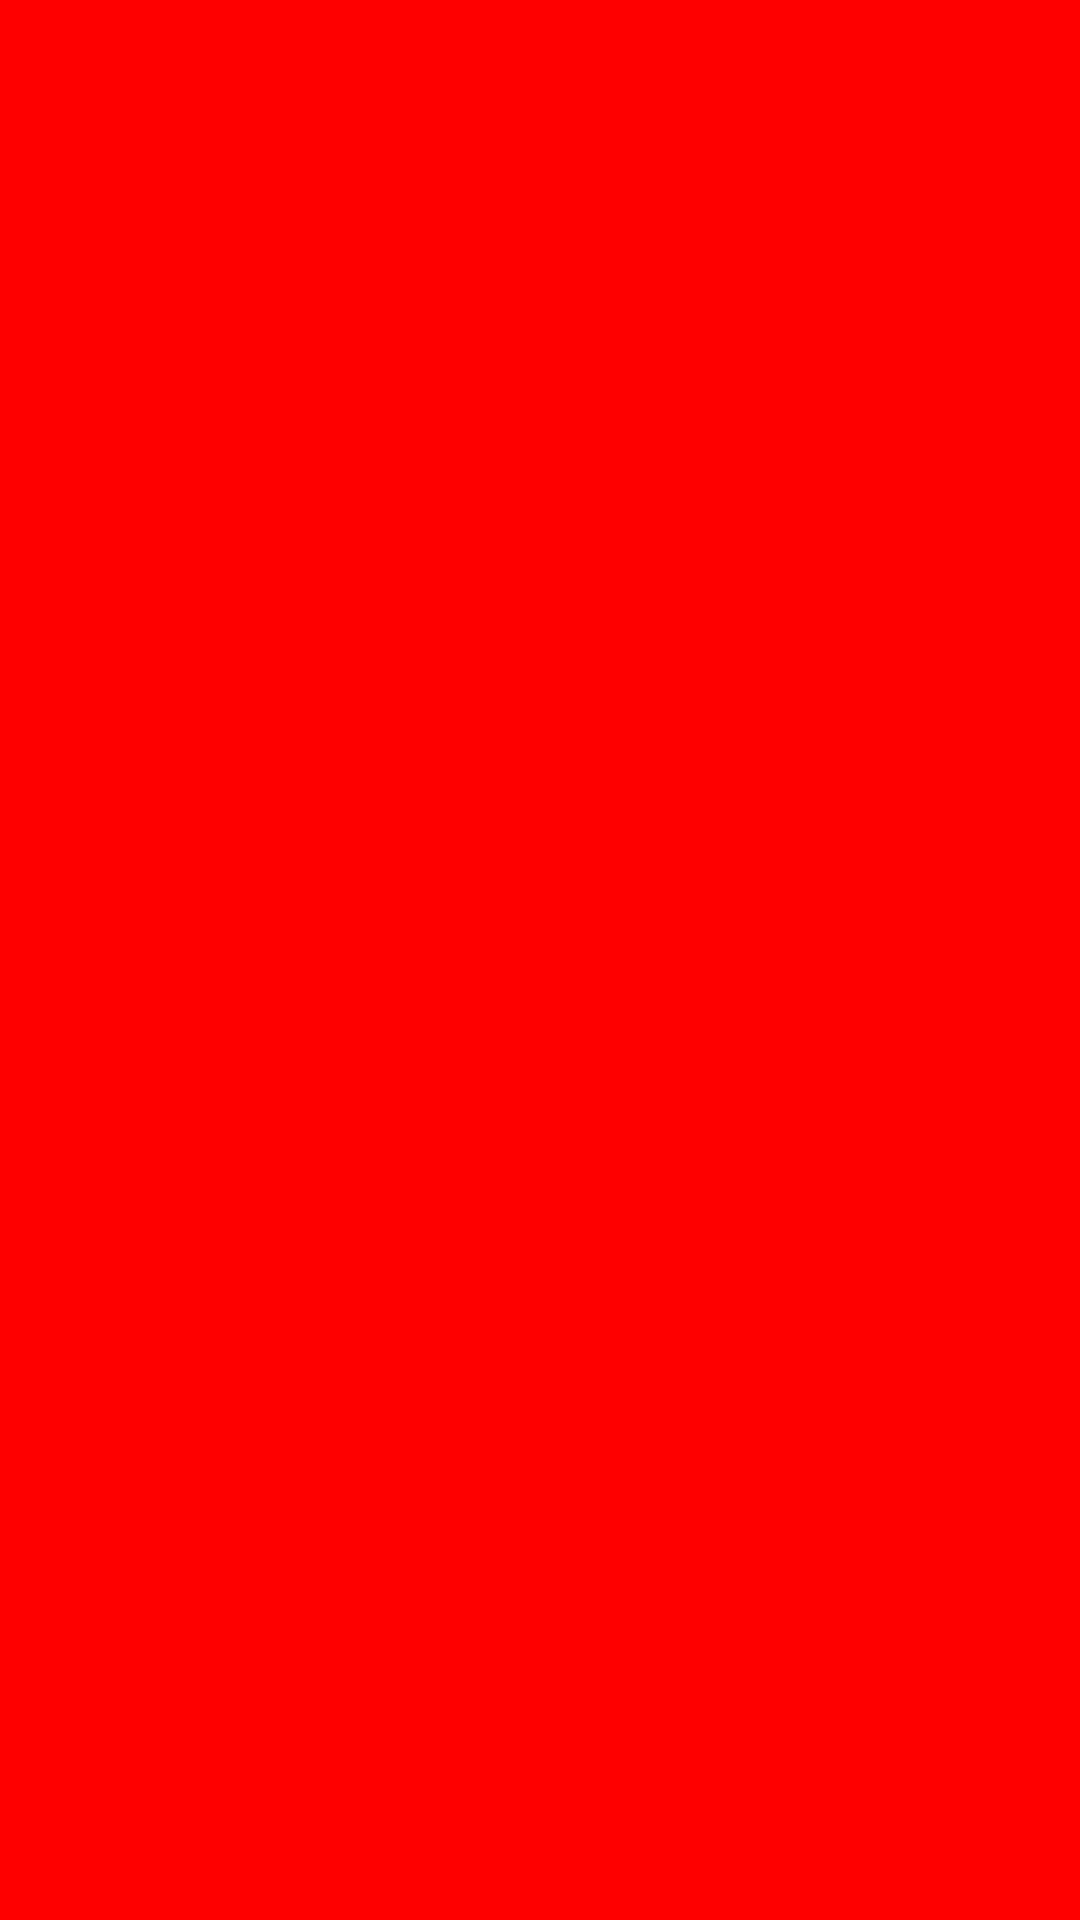 1080x1920 Red Solid Color Background